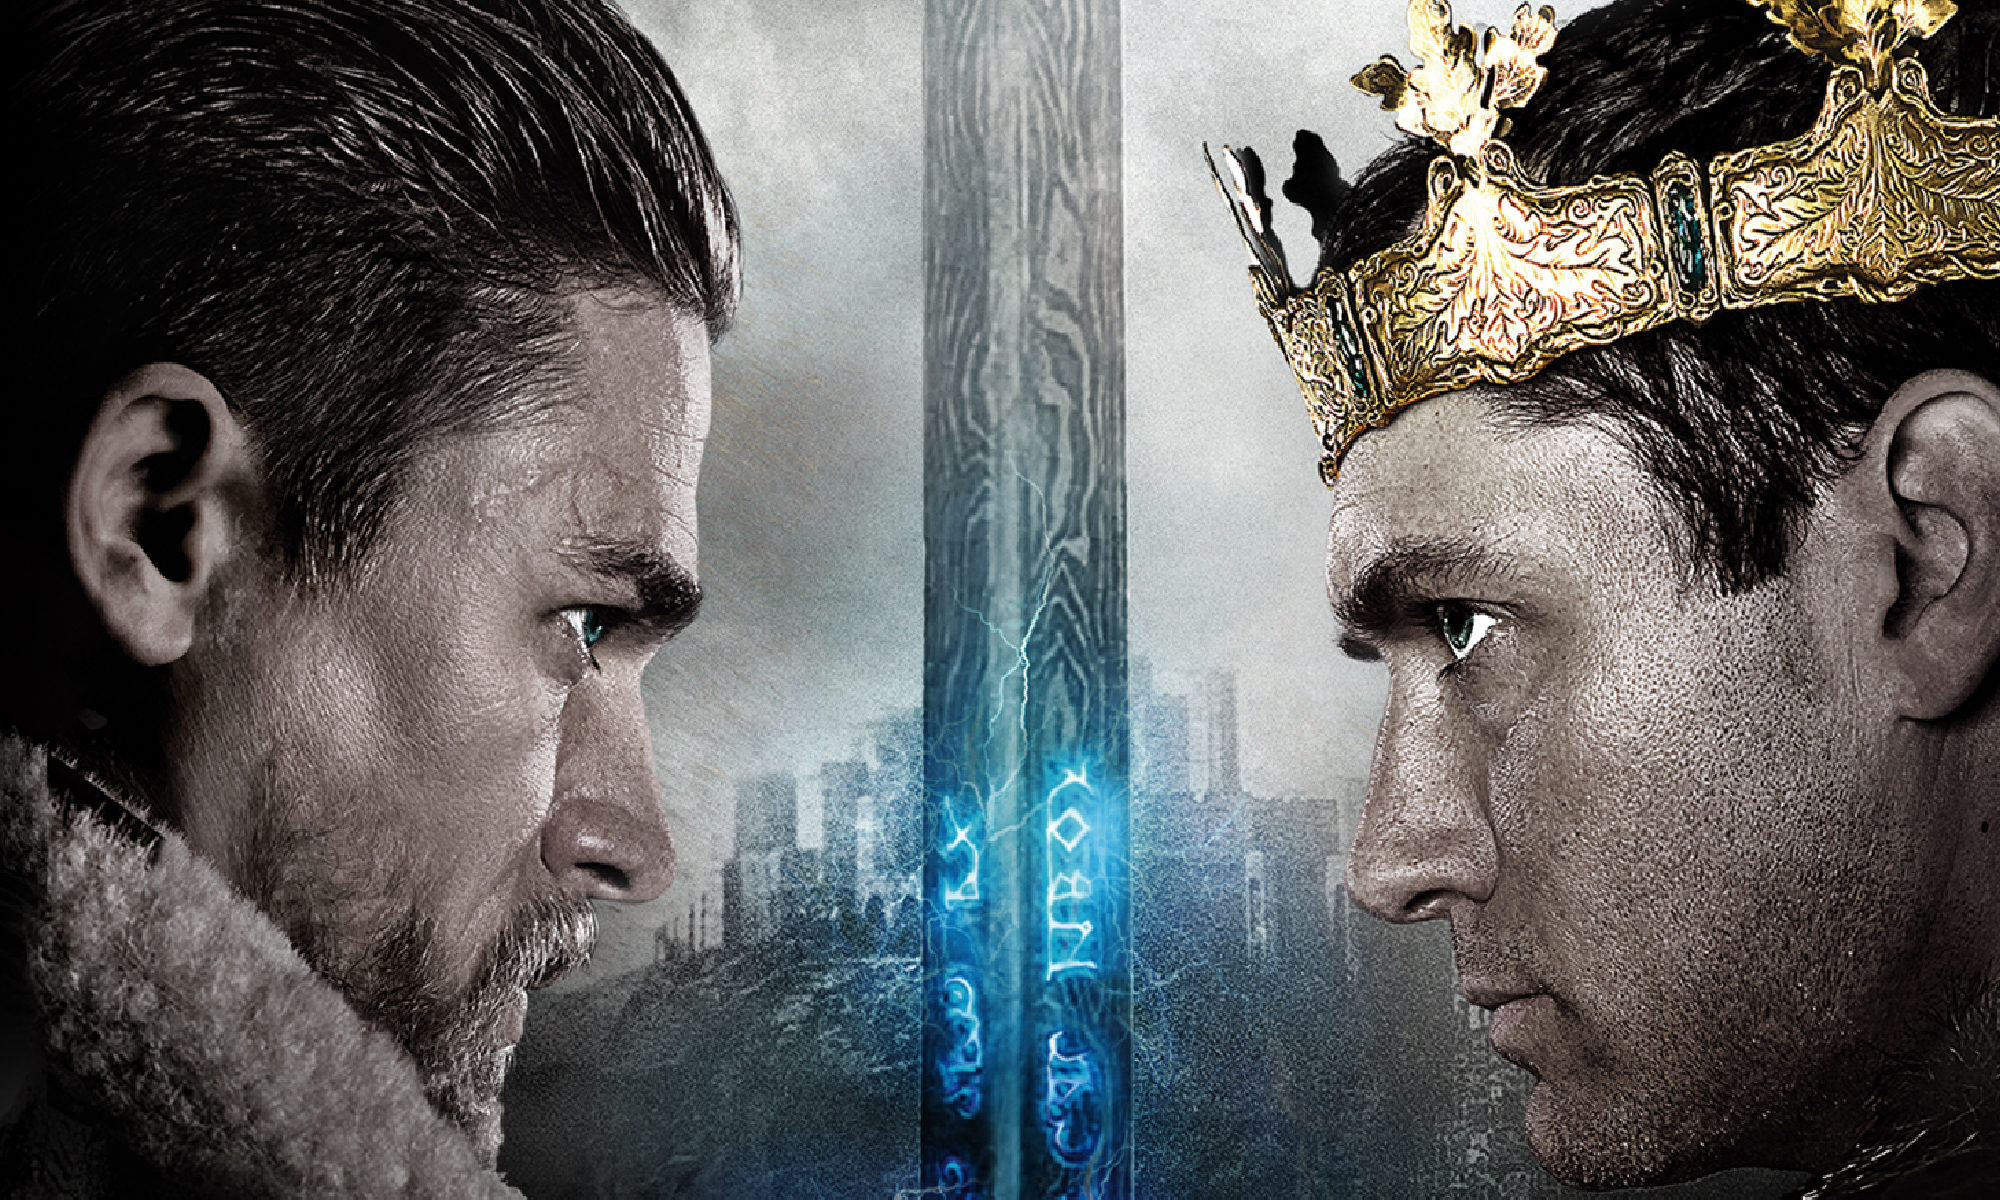 Charlie Hunnam and Jude law star in Warner Bros.' King Arthur: Legend of the Sword